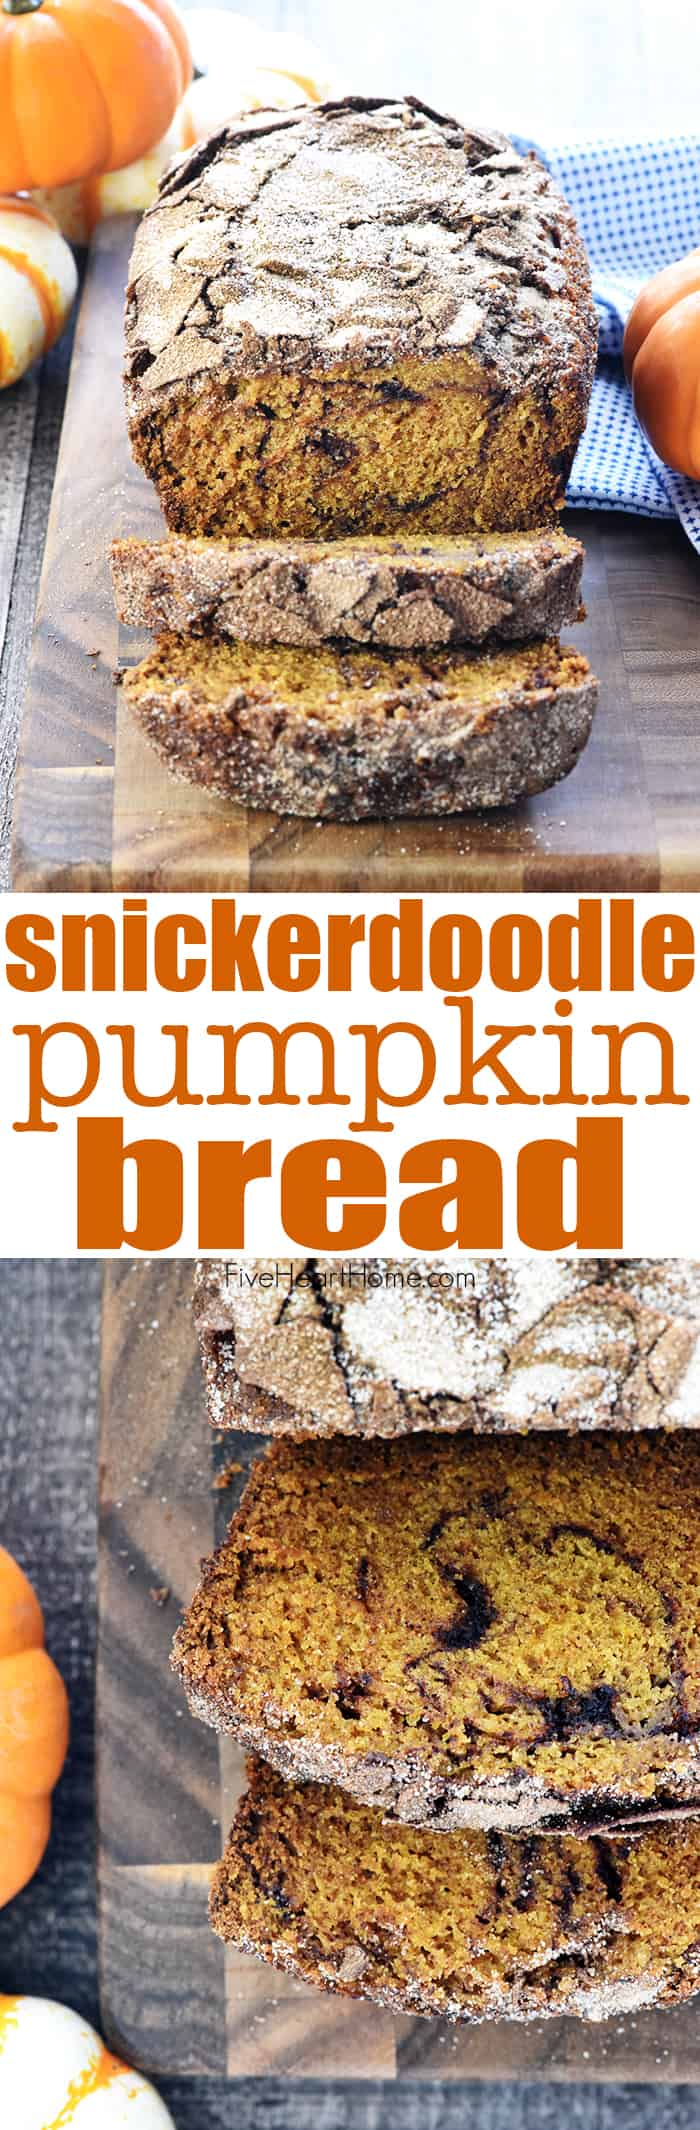 Snickerdoodle Pumpkin Bread ~ a sweet, moist pumpkin bread recipe, swirled and topped with a generous amount of cinnamon sugar for a delicious fall treat! | FiveHeartHome.com via @fivehearthome